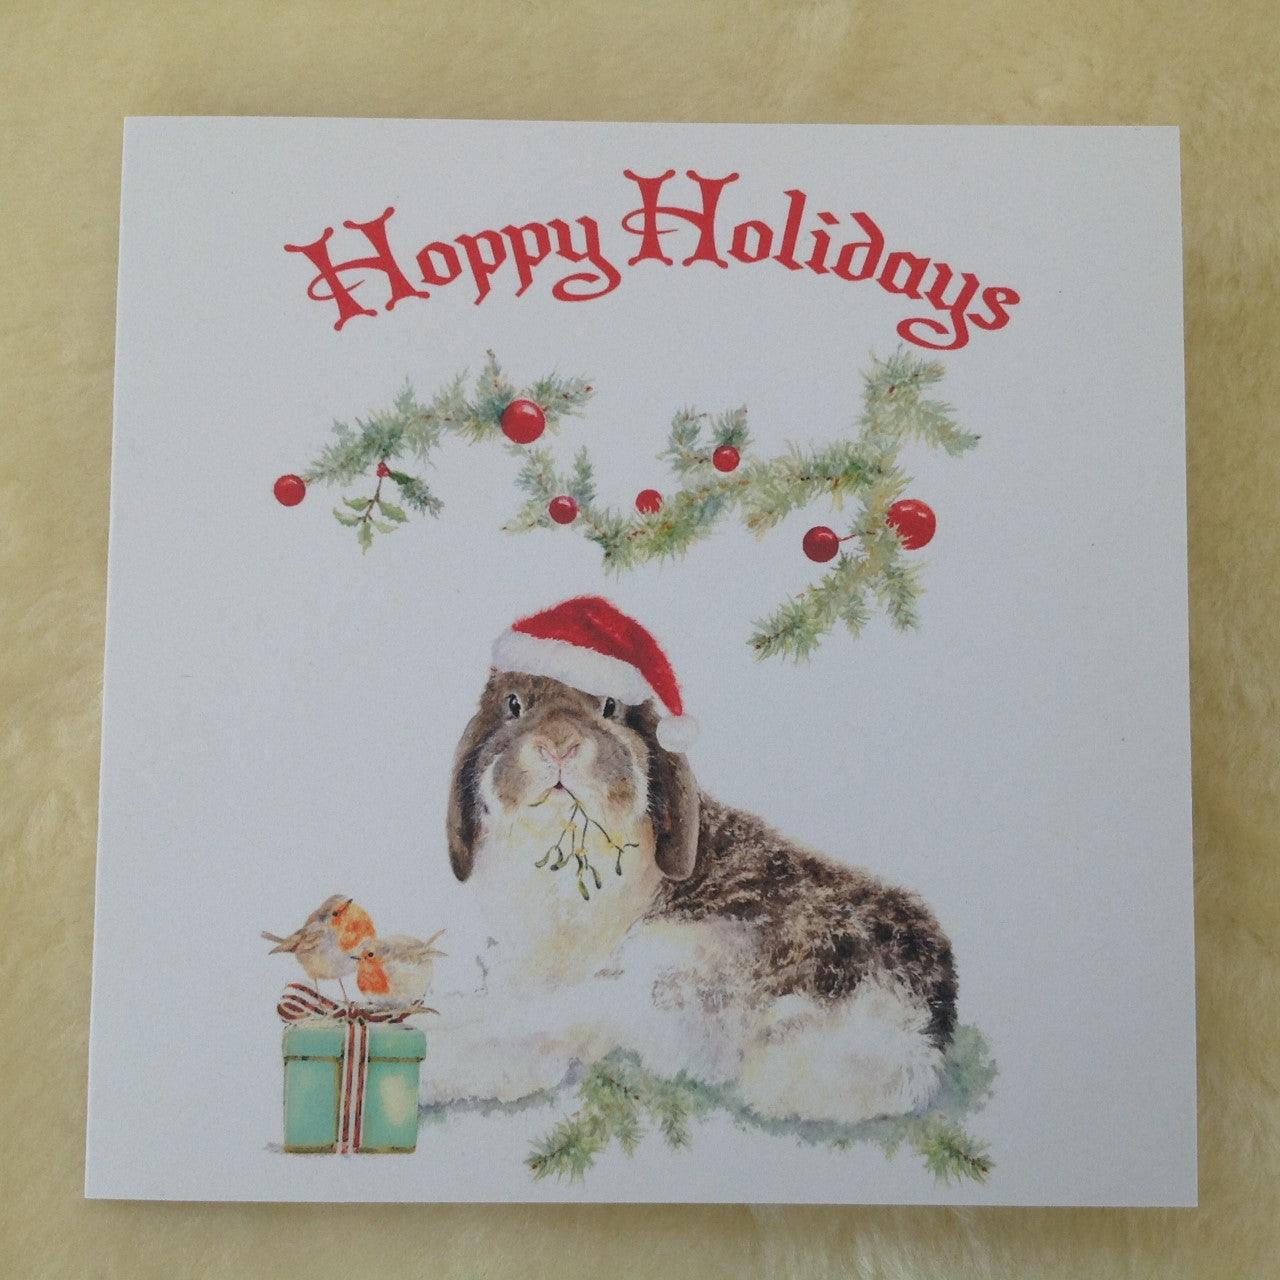 Milly Moo Bunny Rabbit Hoppy Holidays Christmas Greeting Card